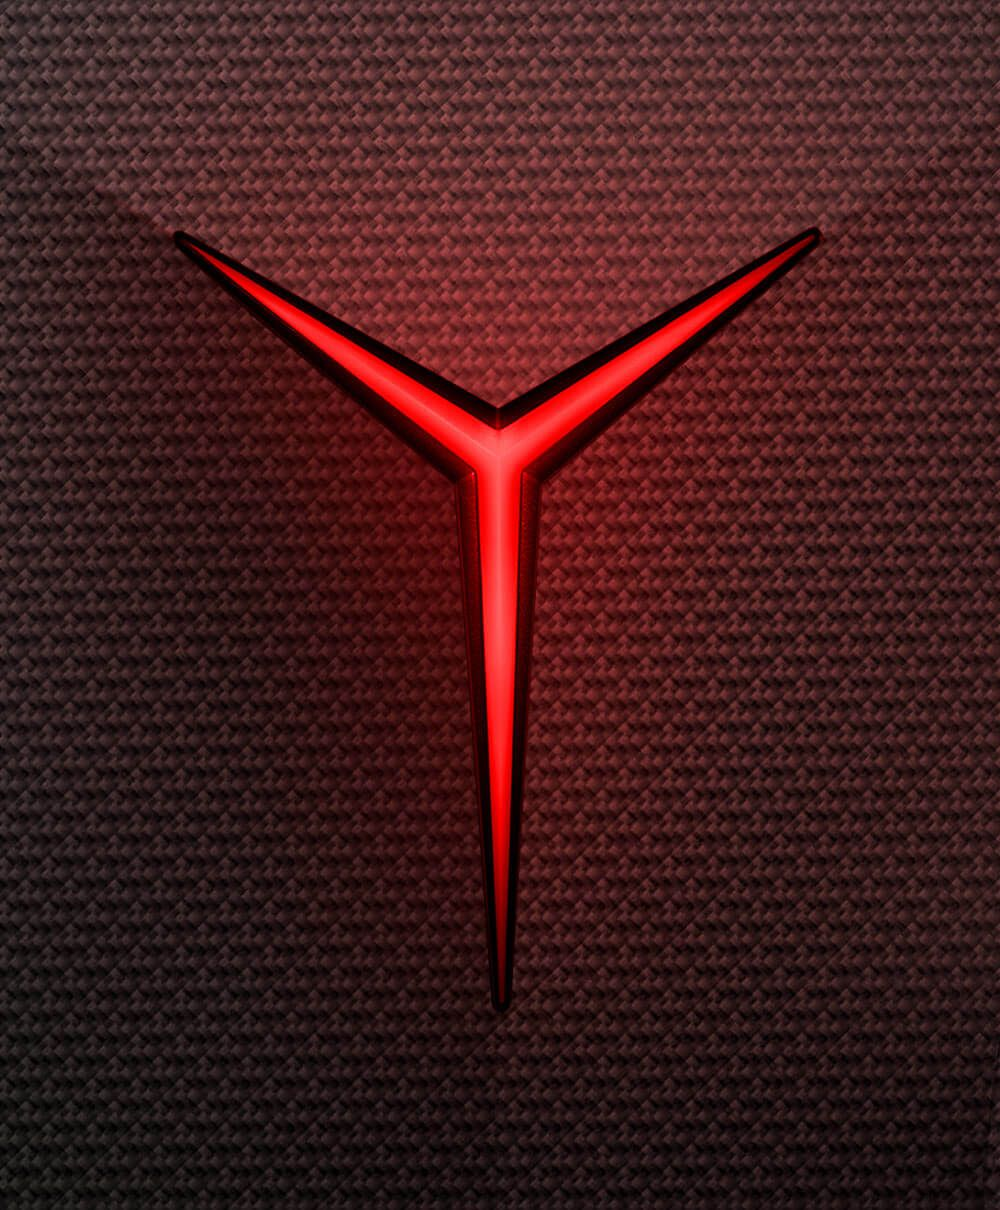 solved y series gaming red wallpaper lenovo community lenovo wallpapers red wallpaper iphone wallpaper texture solved y series gaming red wallpaper